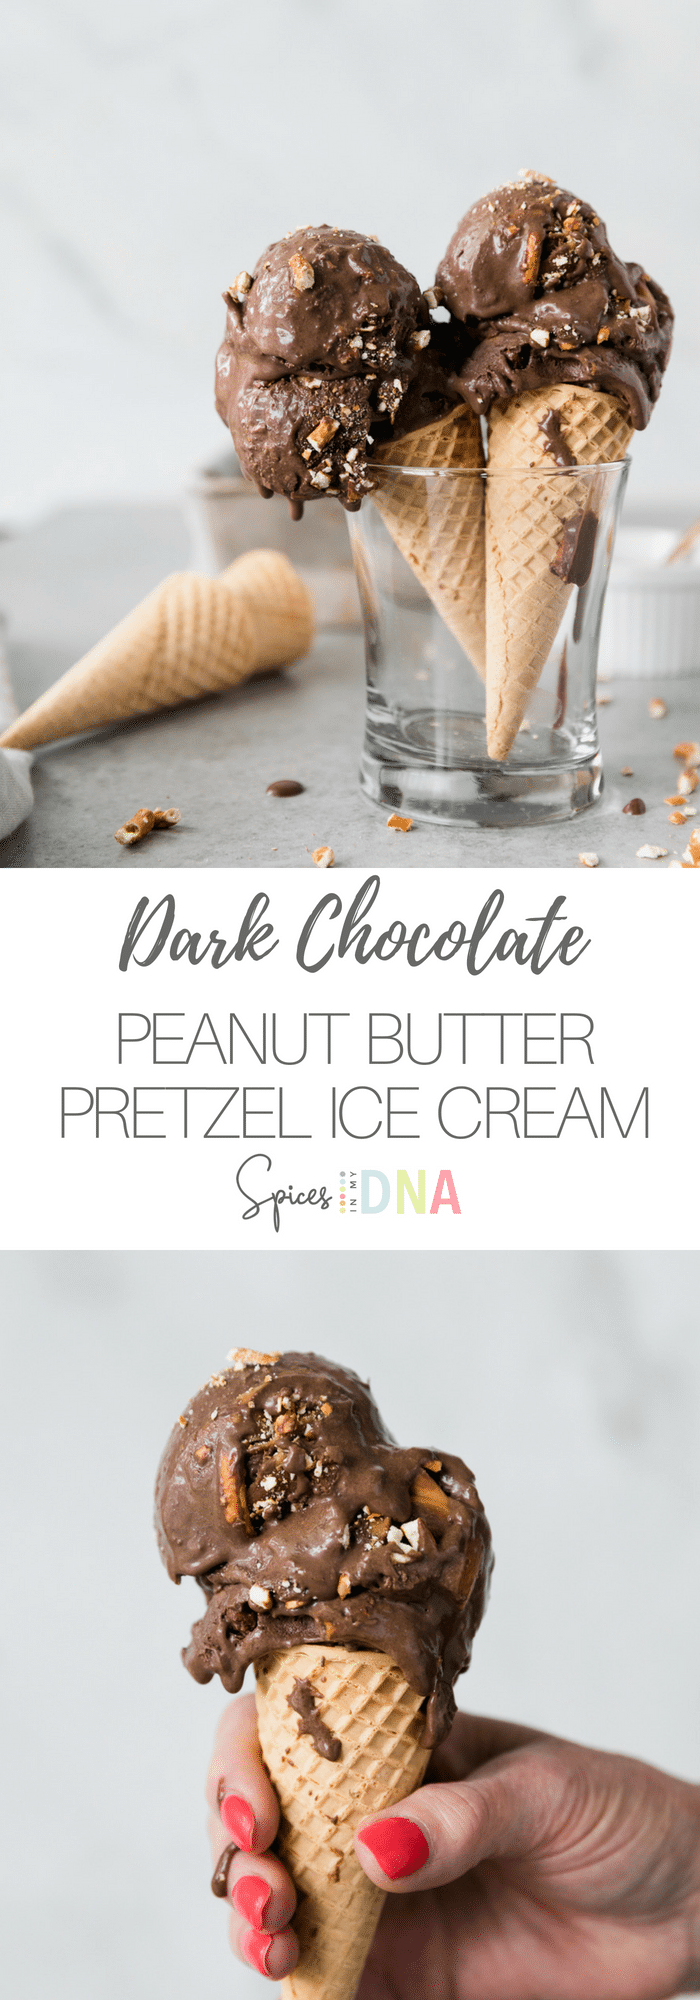 This Dark Chocolate Peanut Butter Pretzel Ice Cream is incredibly smooth, rich, and decadent. It's filled with swirls of peanut butter, intense dark chocolate flavor, and crushed pretzels. It's easy to make, and the most perfect summertime treat! #icecream #darkchocolate #homemadeicecream #peanutbutter